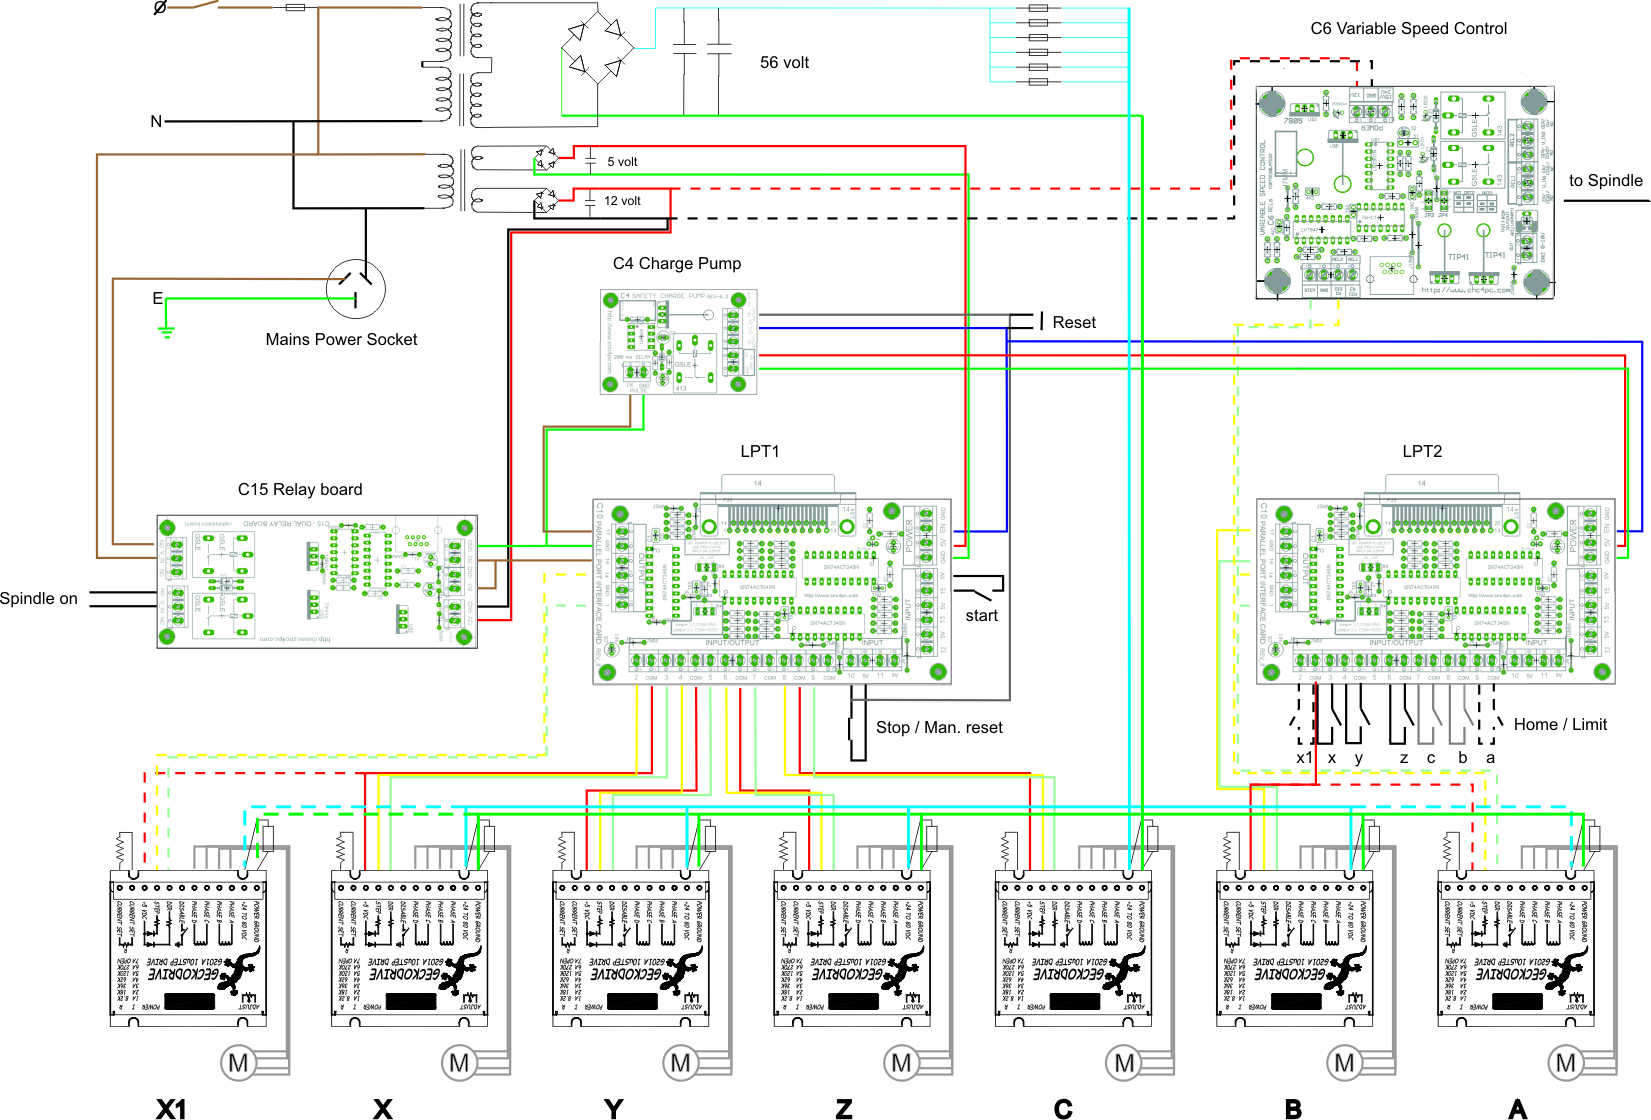 2aff8f7e066be68916d3378deed4a357 montage �lectronique cnc 5 axes ������ pinterest cnc, cnc cnc controller wiring diagram at bayanpartner.co